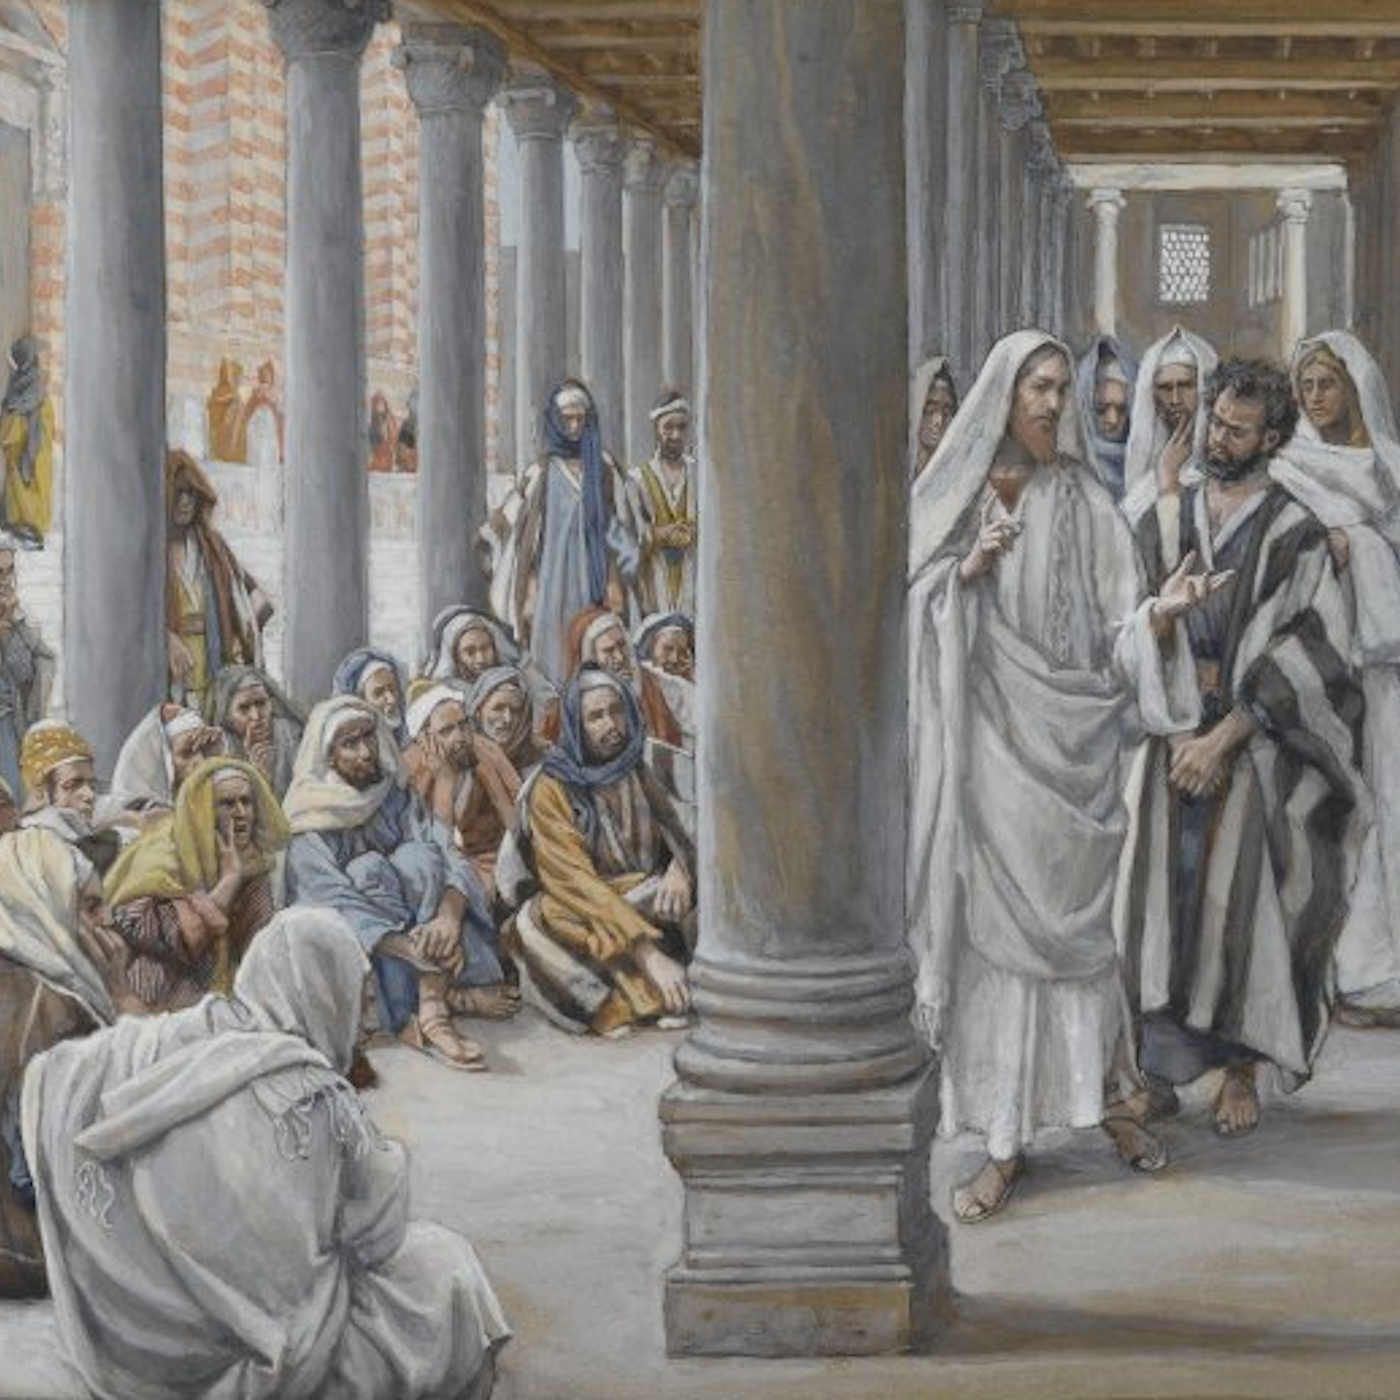 Twenty-Second Sunday in Ordinary Time (Year B) - That Which is Within